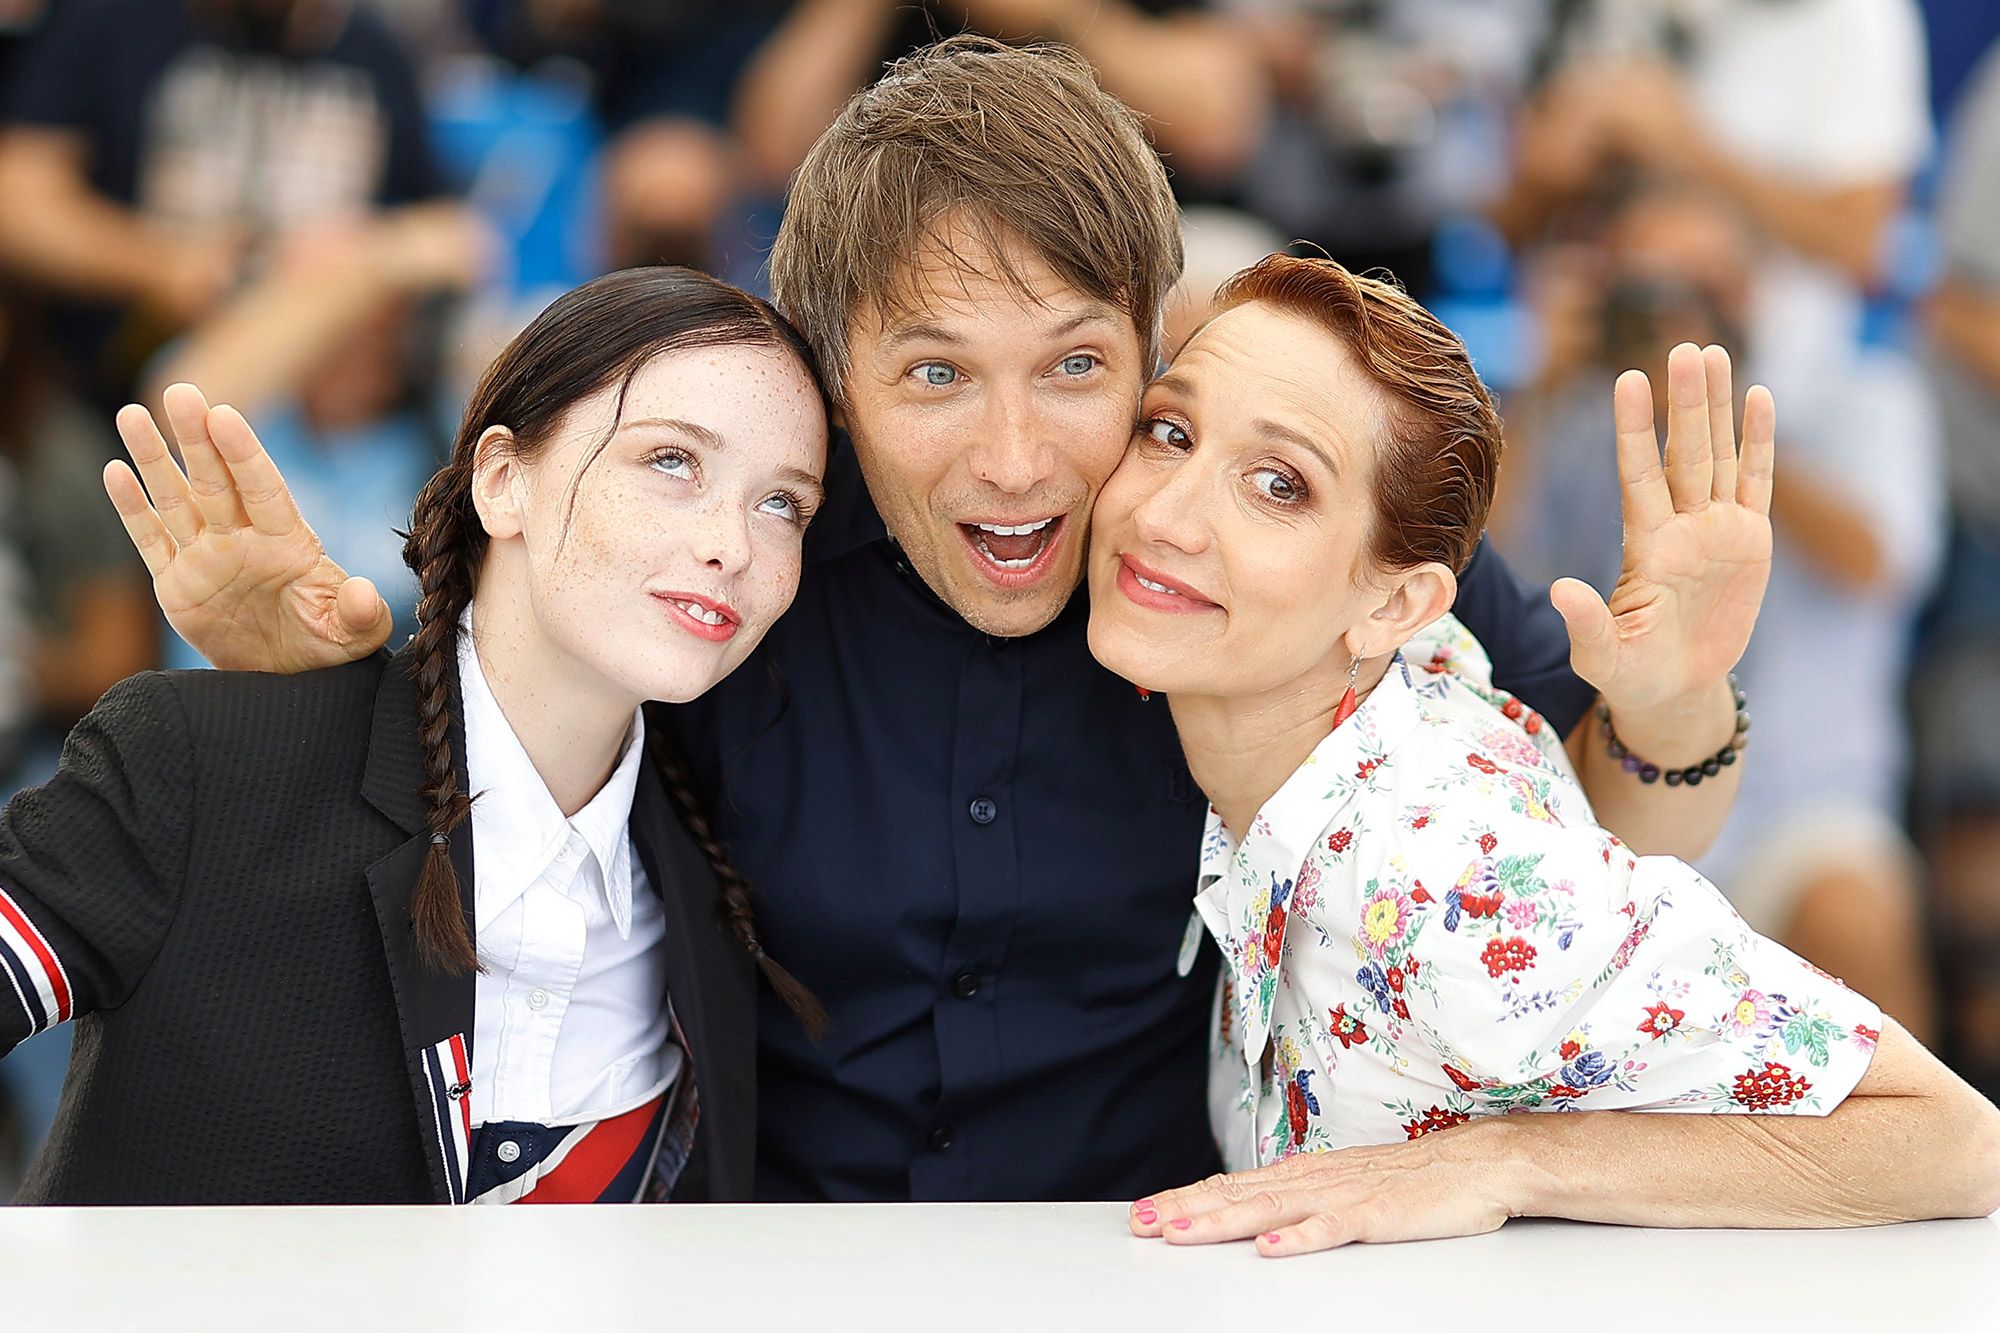 Suzanna Son, director Sean Baker, and Bree Elrod pose during the photocall for 'Red Rocket' at the 74th annual Cannes Film Festival, in Cannes, France, 15 July 2021. The movie is presented in the Official Competition of the festival which runs from 06 to 17 July. Red Rocket Photocall - 74th Cannes Film Festival, France - 15 Jul 2021